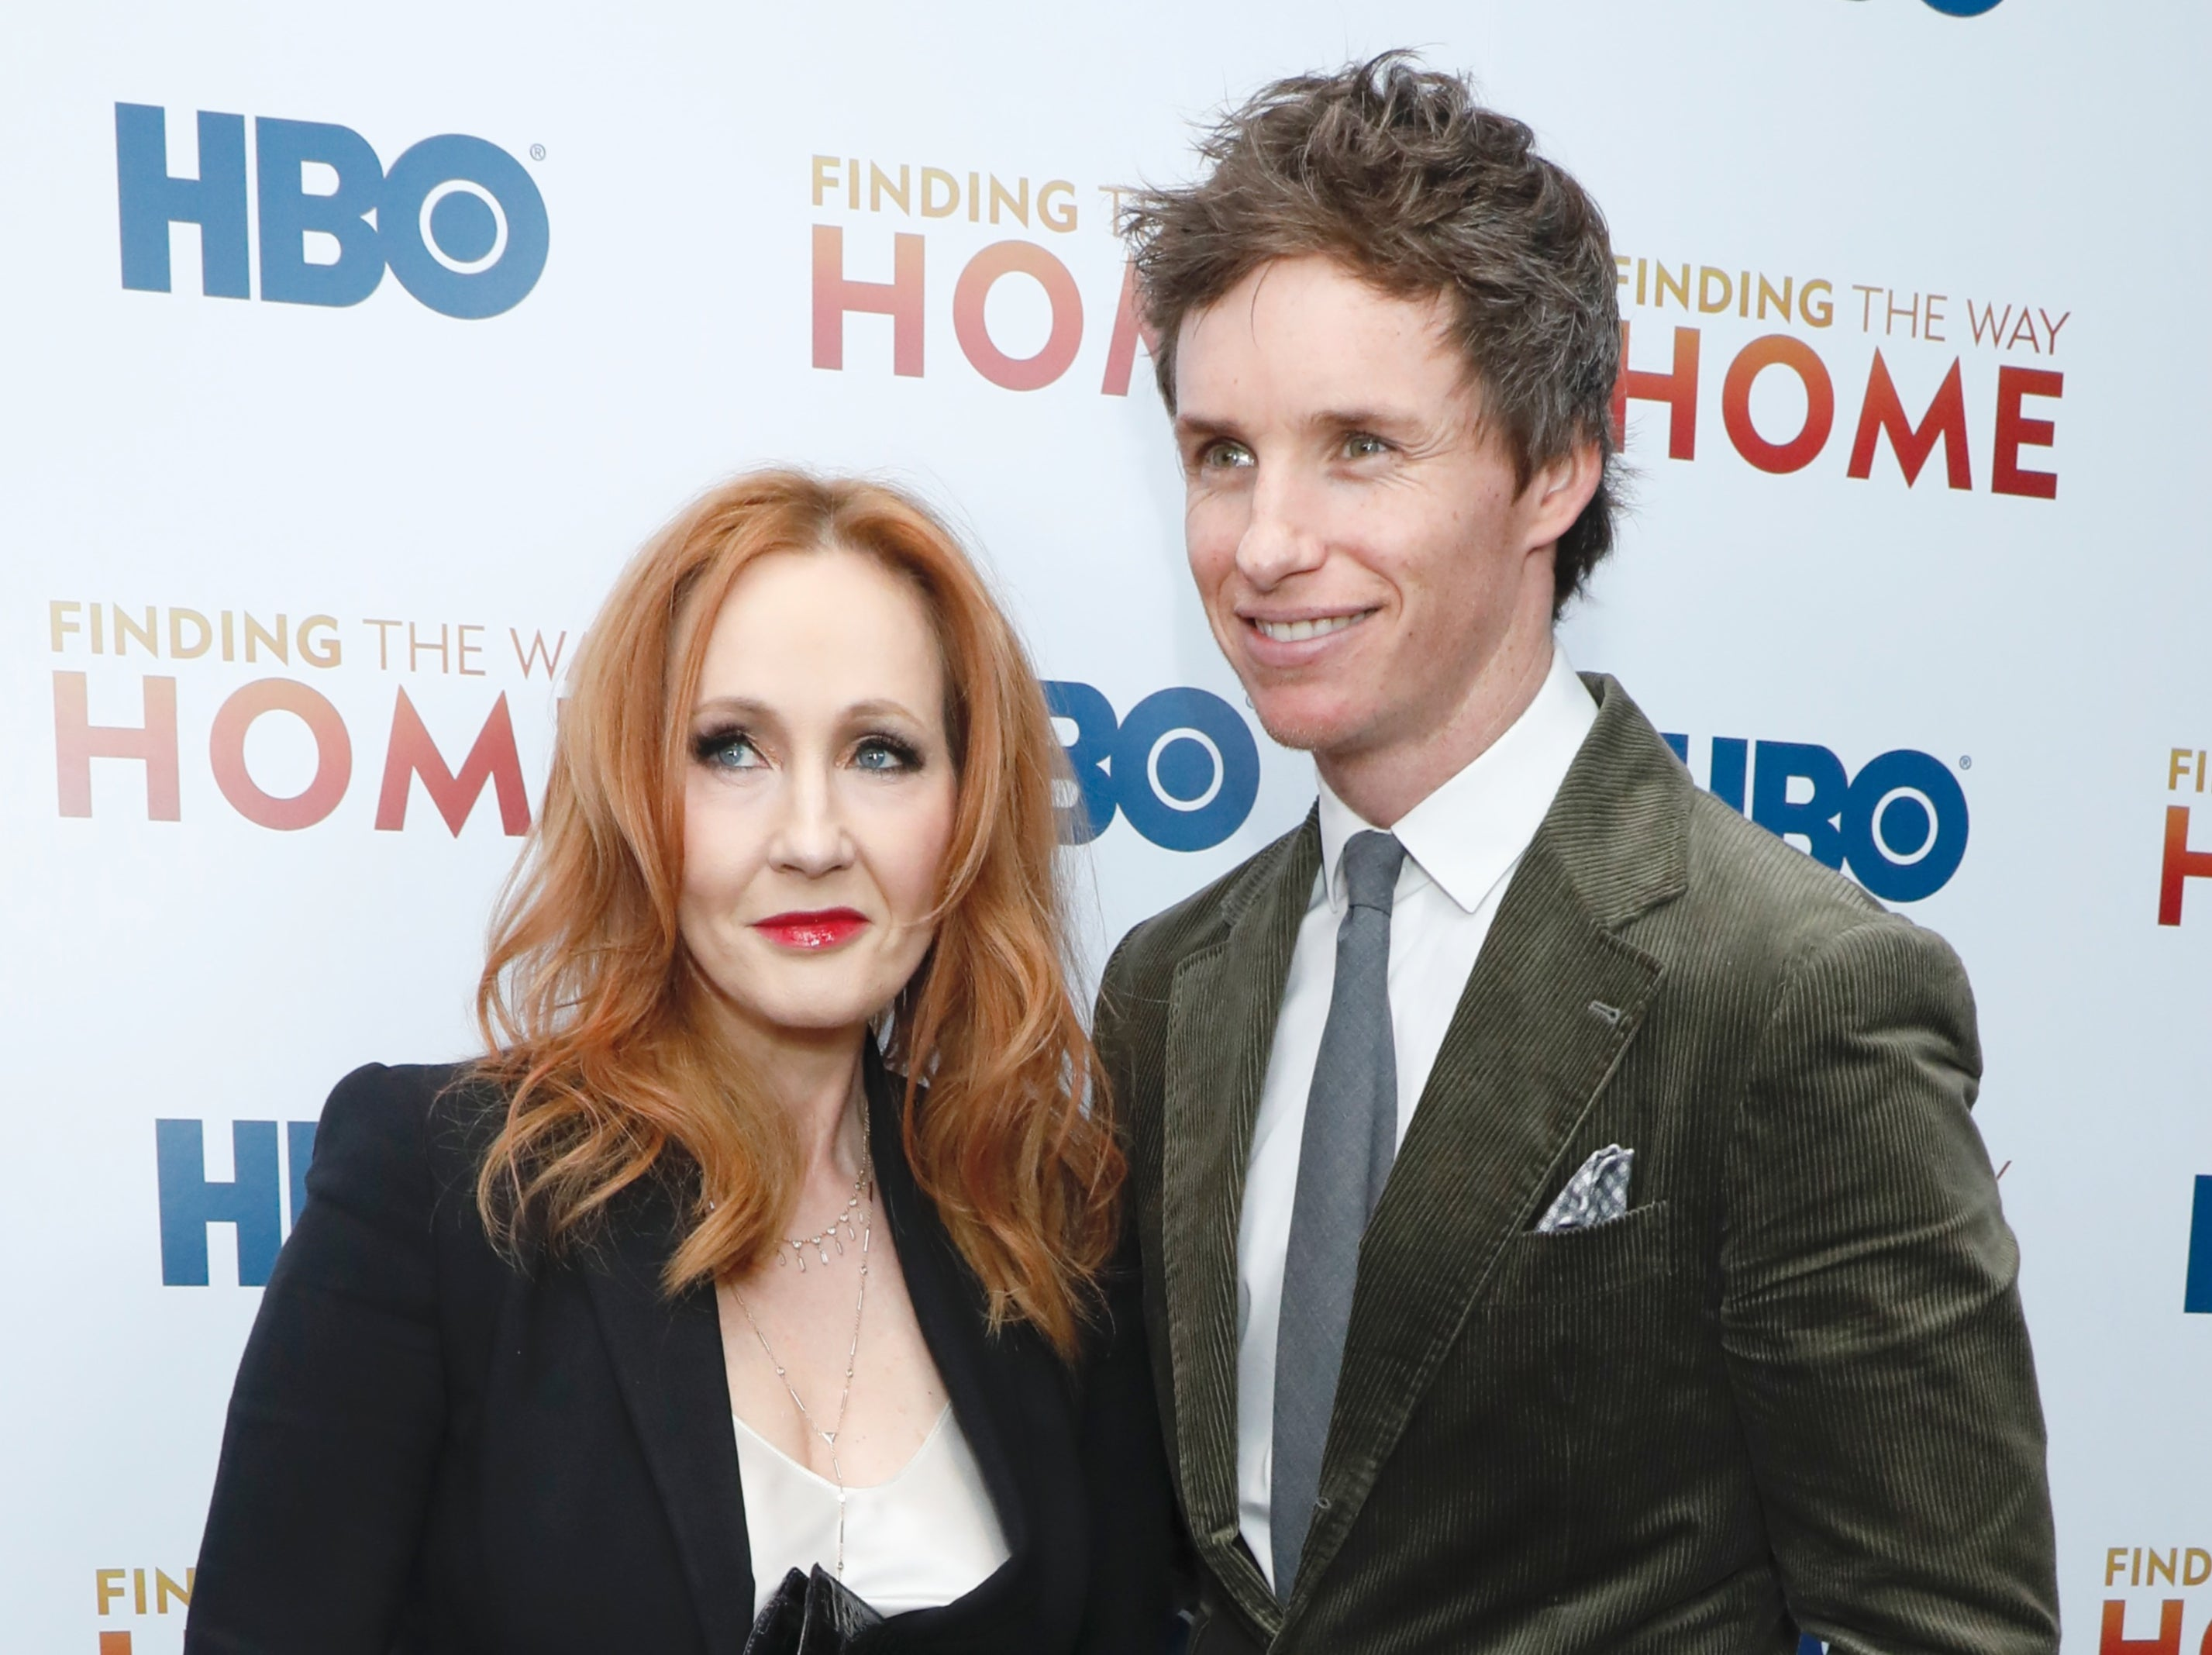 Eddie Redmayne says 'vitriol' JK Rowling has received over trans comments is 'absolutely disgusting'